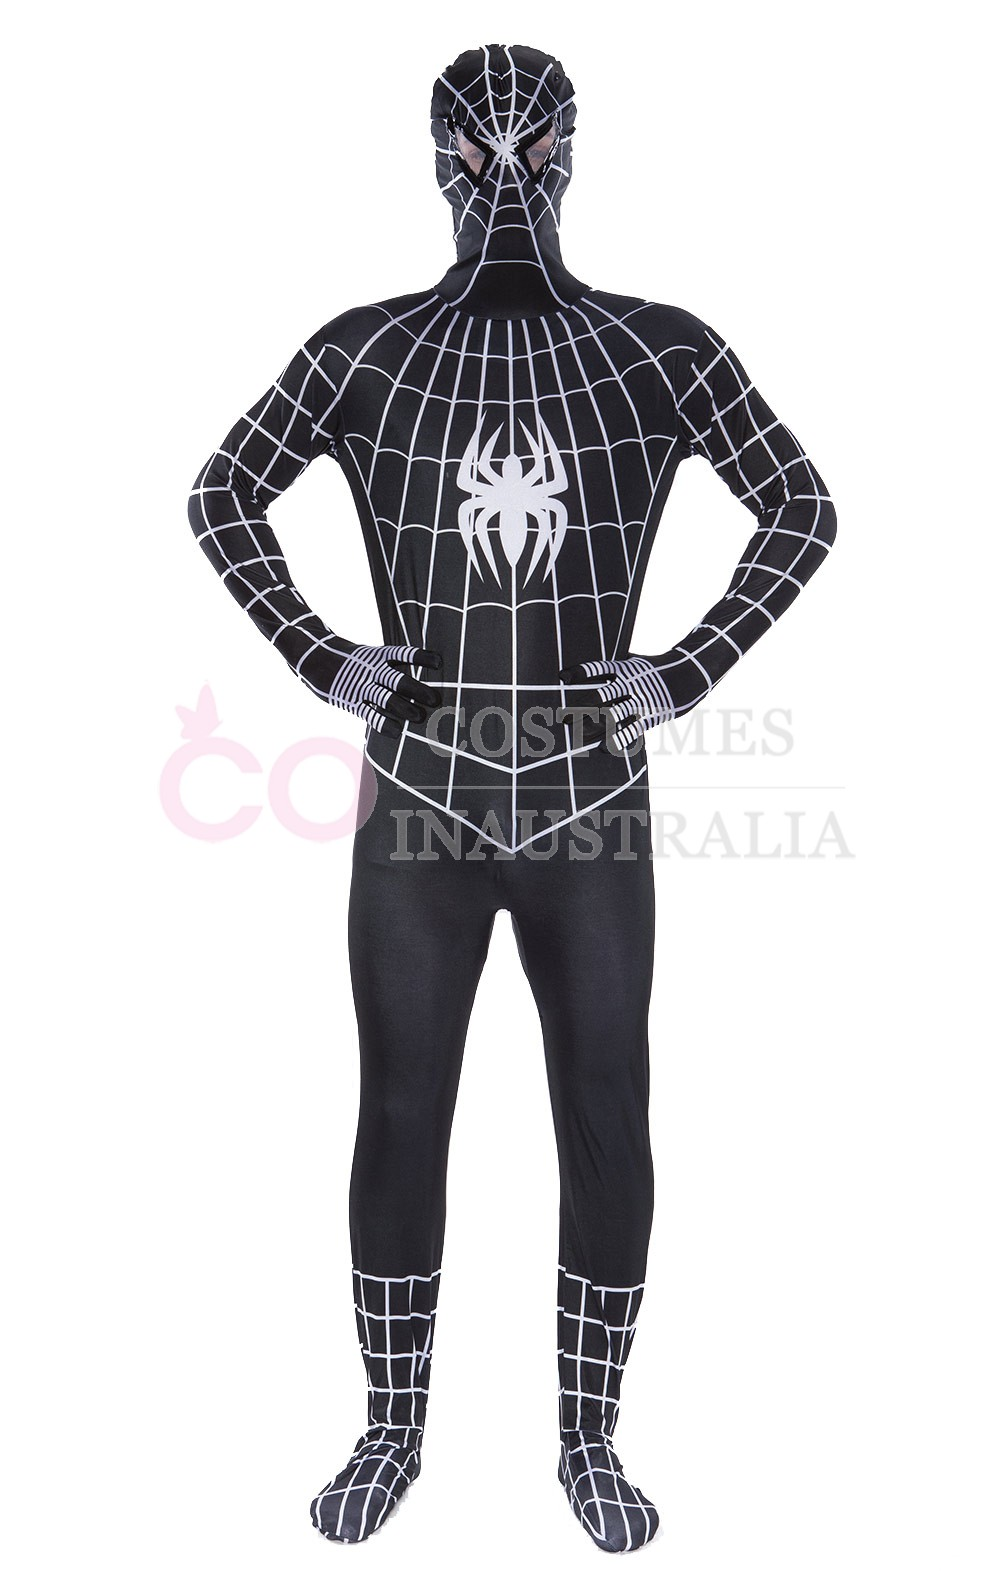 Provide Spider-man Costume for Kids and lemkecollier.gaman Costumes are best for halloween Cosplay,we provide many styles of spiderman costumes,spider-man lemkecollier.ga-Man is a very very hot fictional superhero character in the world.